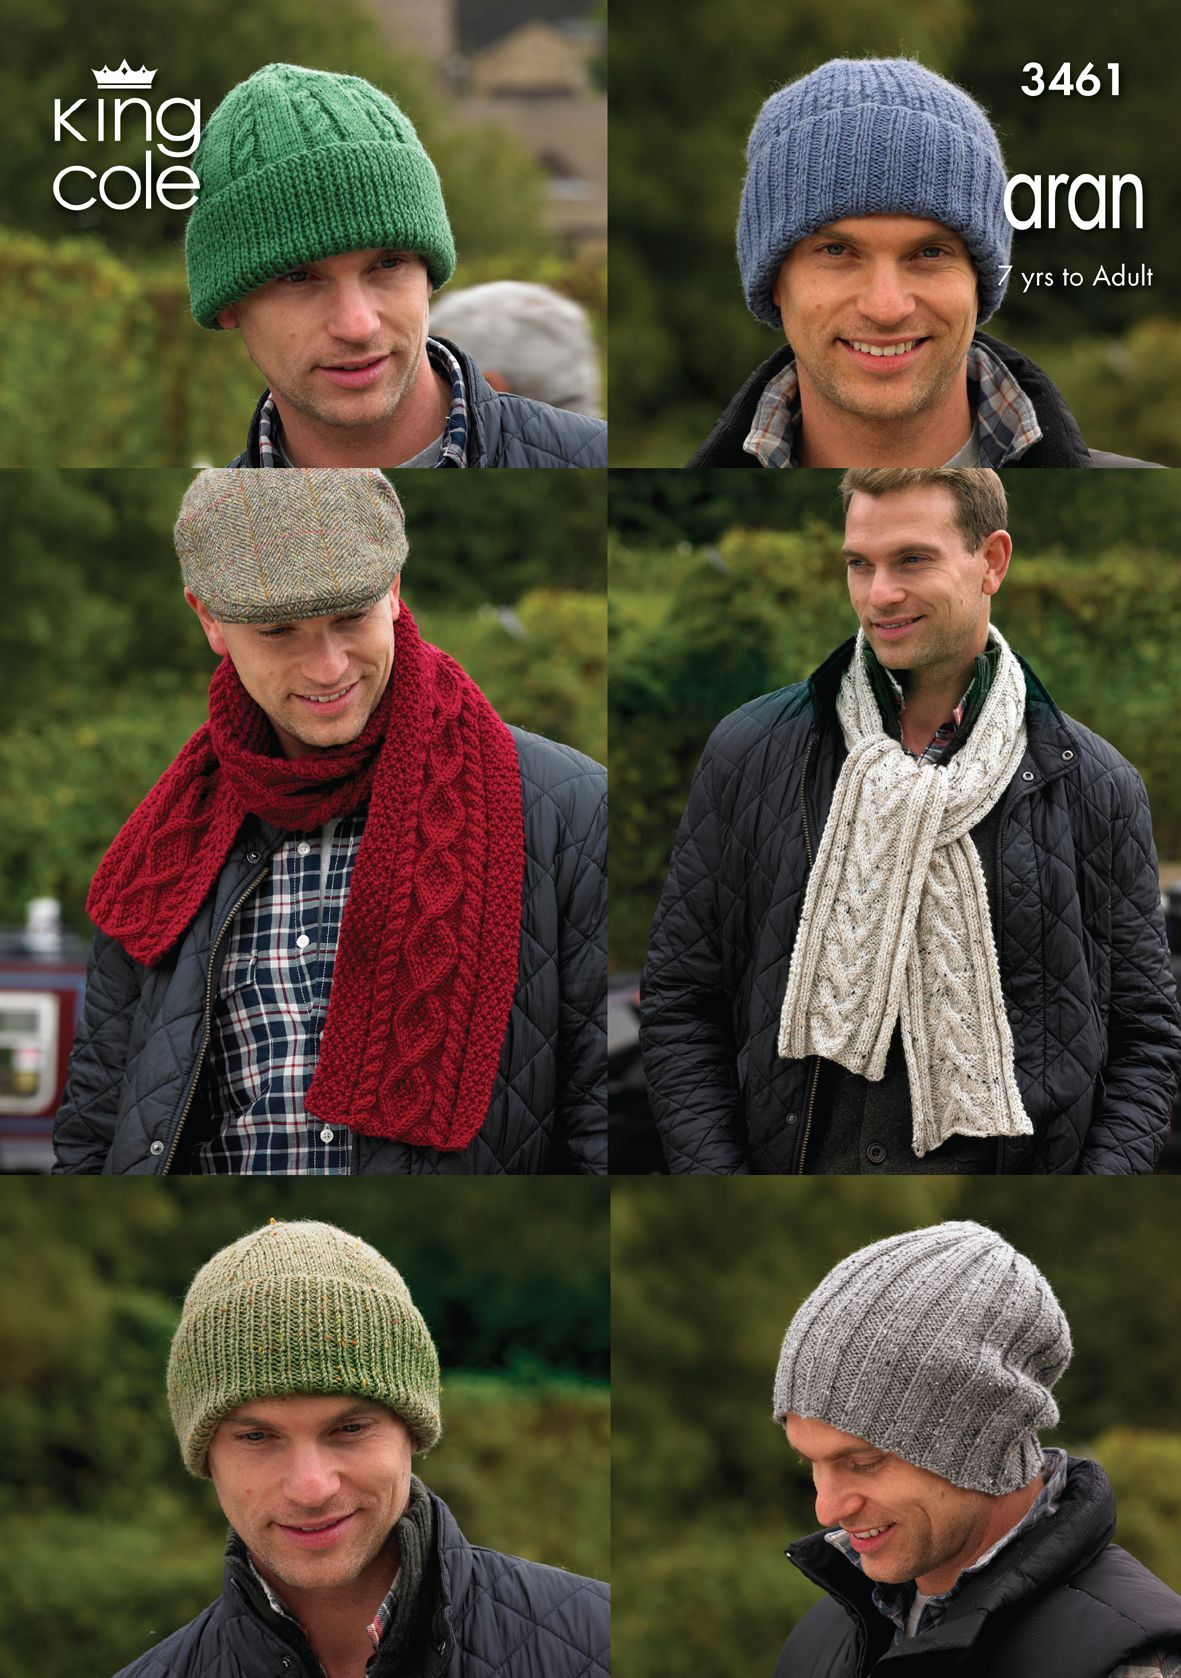 Knitted mens hats and scarves - King Cole | Knitting Projects ...